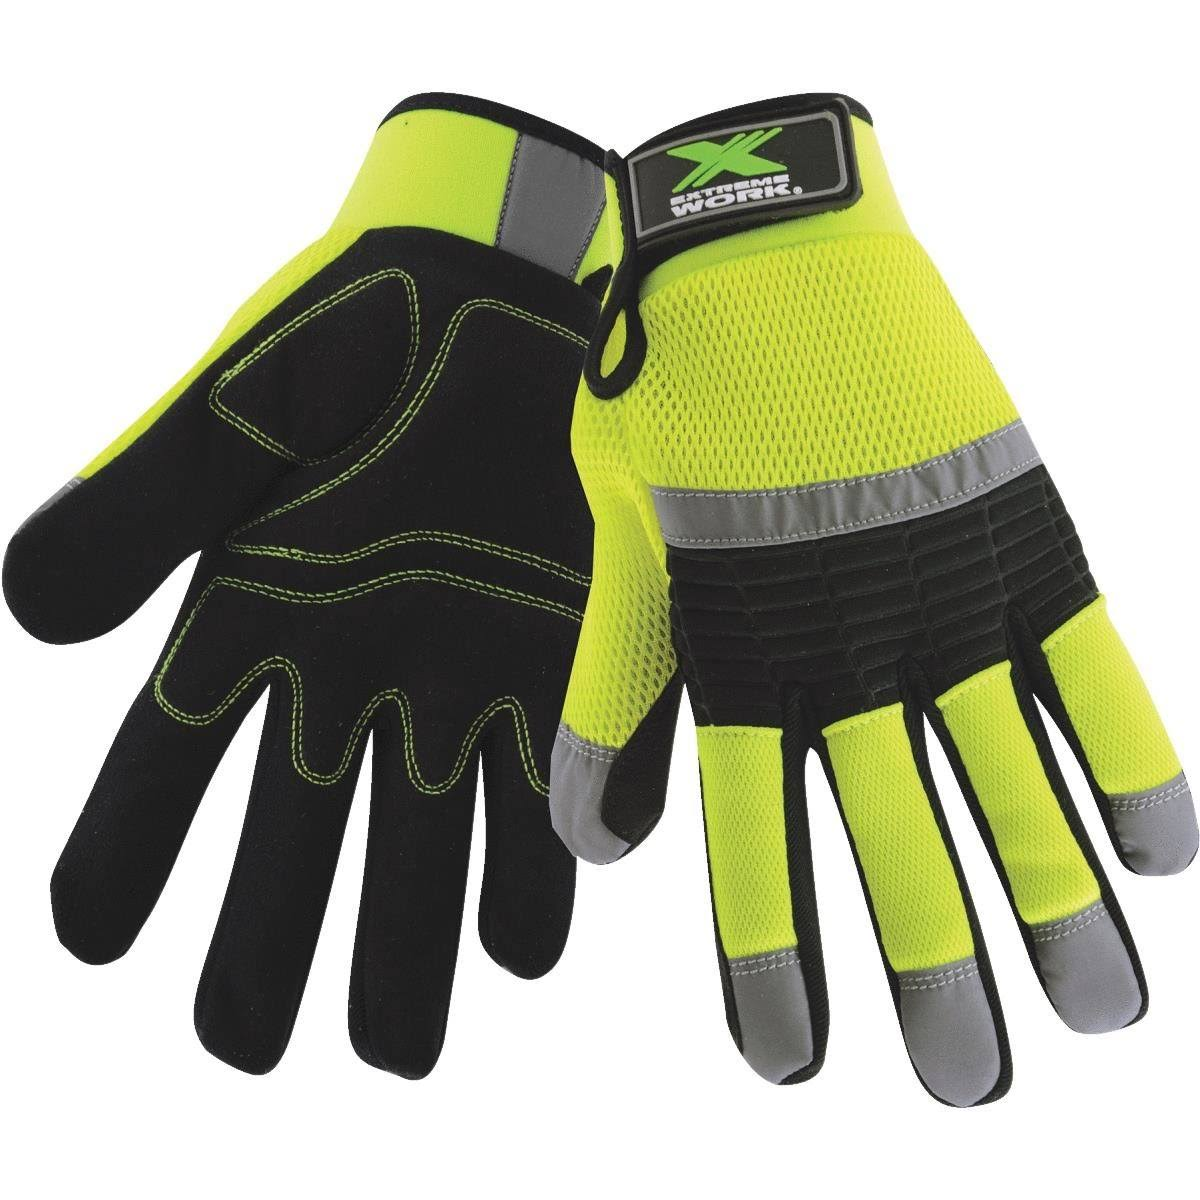 West Chester Protective Gear Extreme Work High Visibility Work Glove